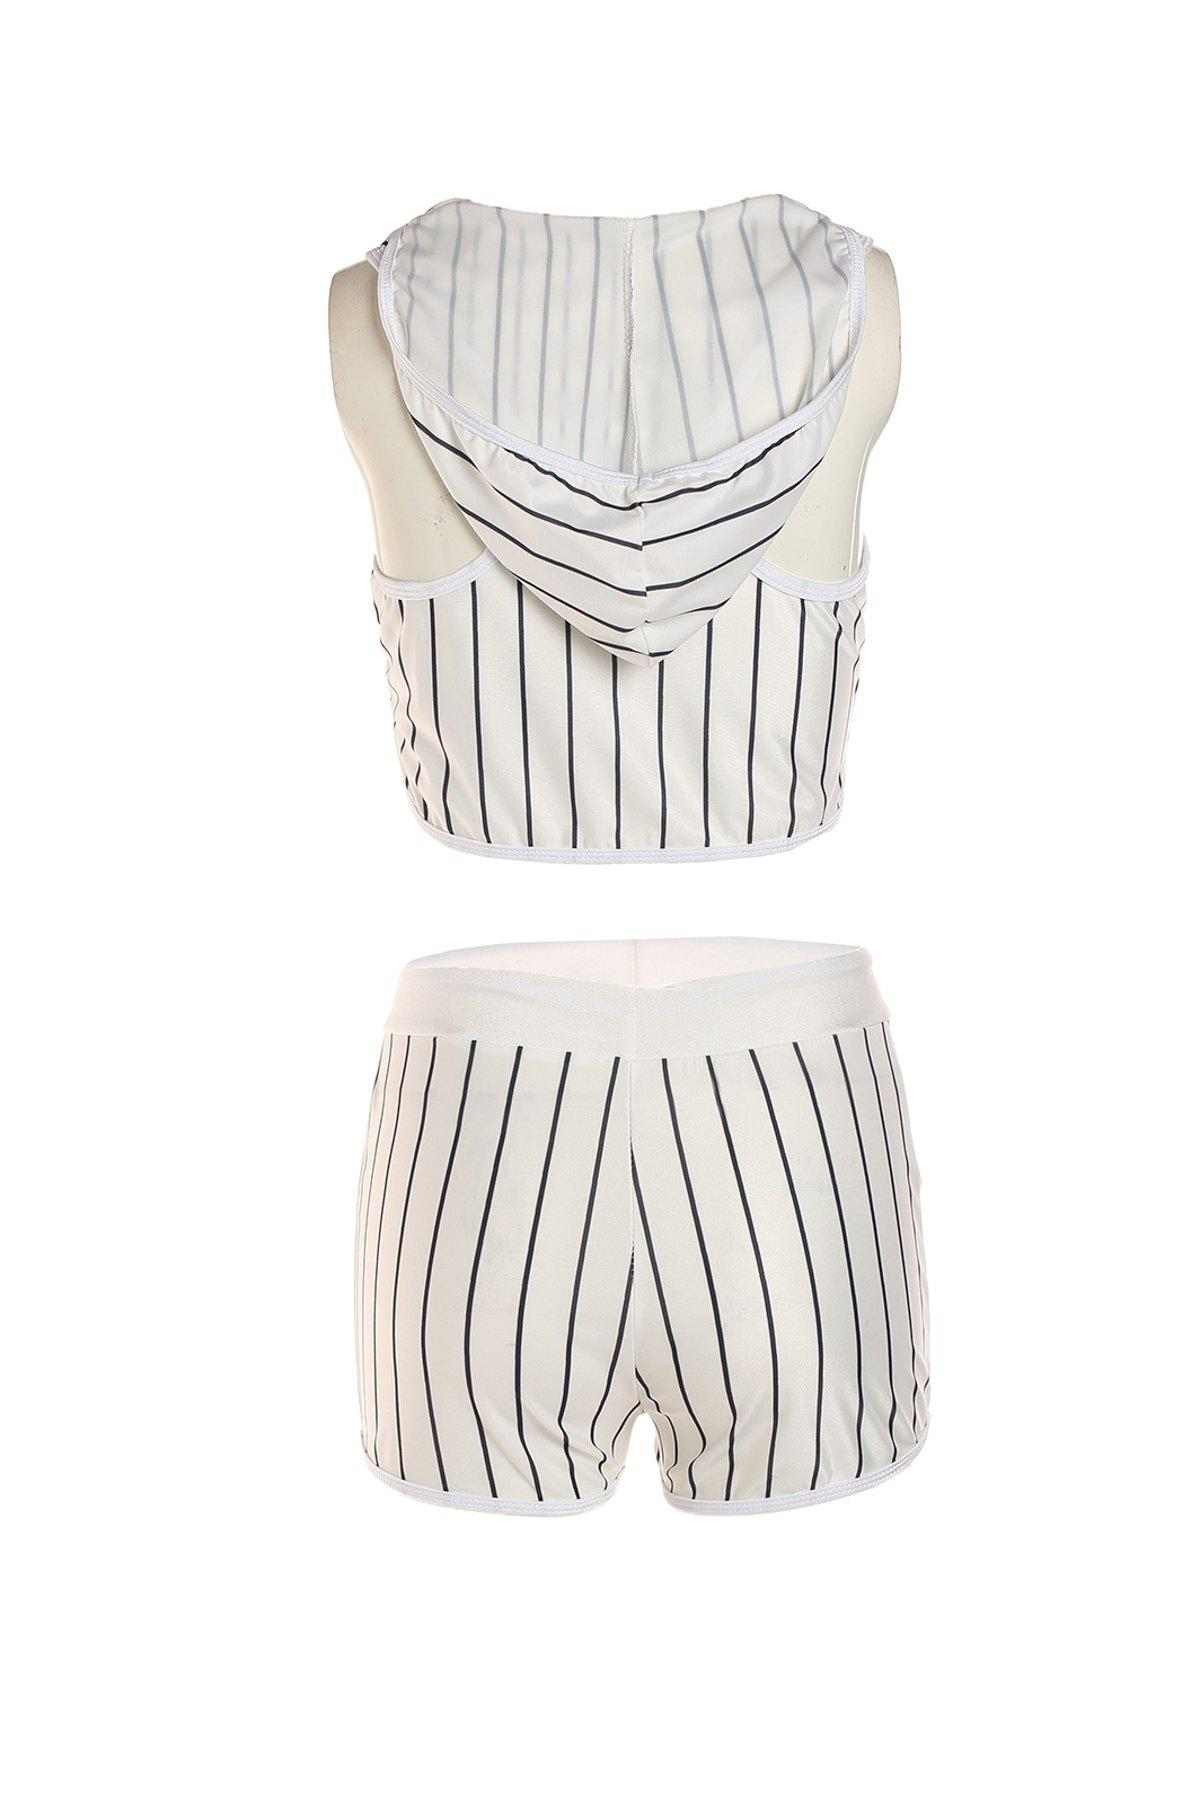 Sexy Striped Hooded Short Tank Top+ Shorts Sport Suit For Women - WHITE L